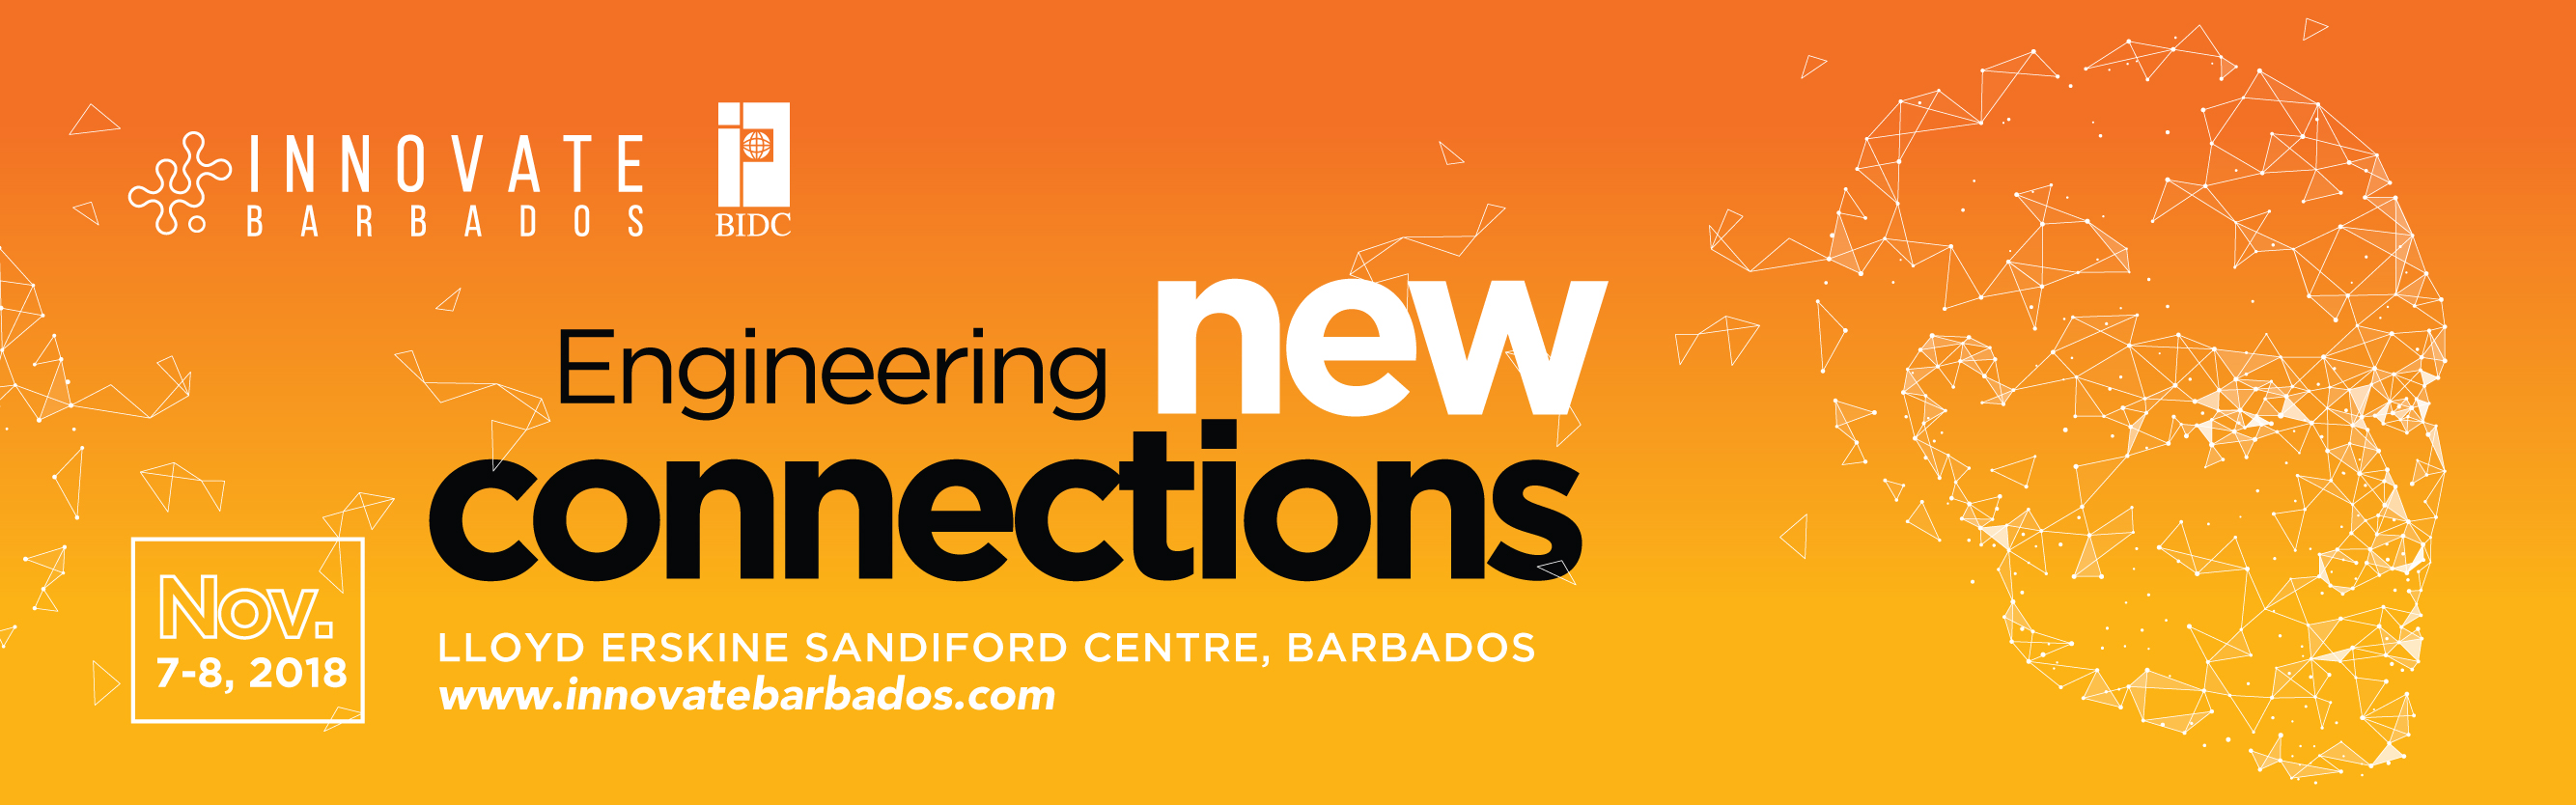 Tickets for Innovate Barbados 2017 in Bridgetown from Ready Tickets Inc